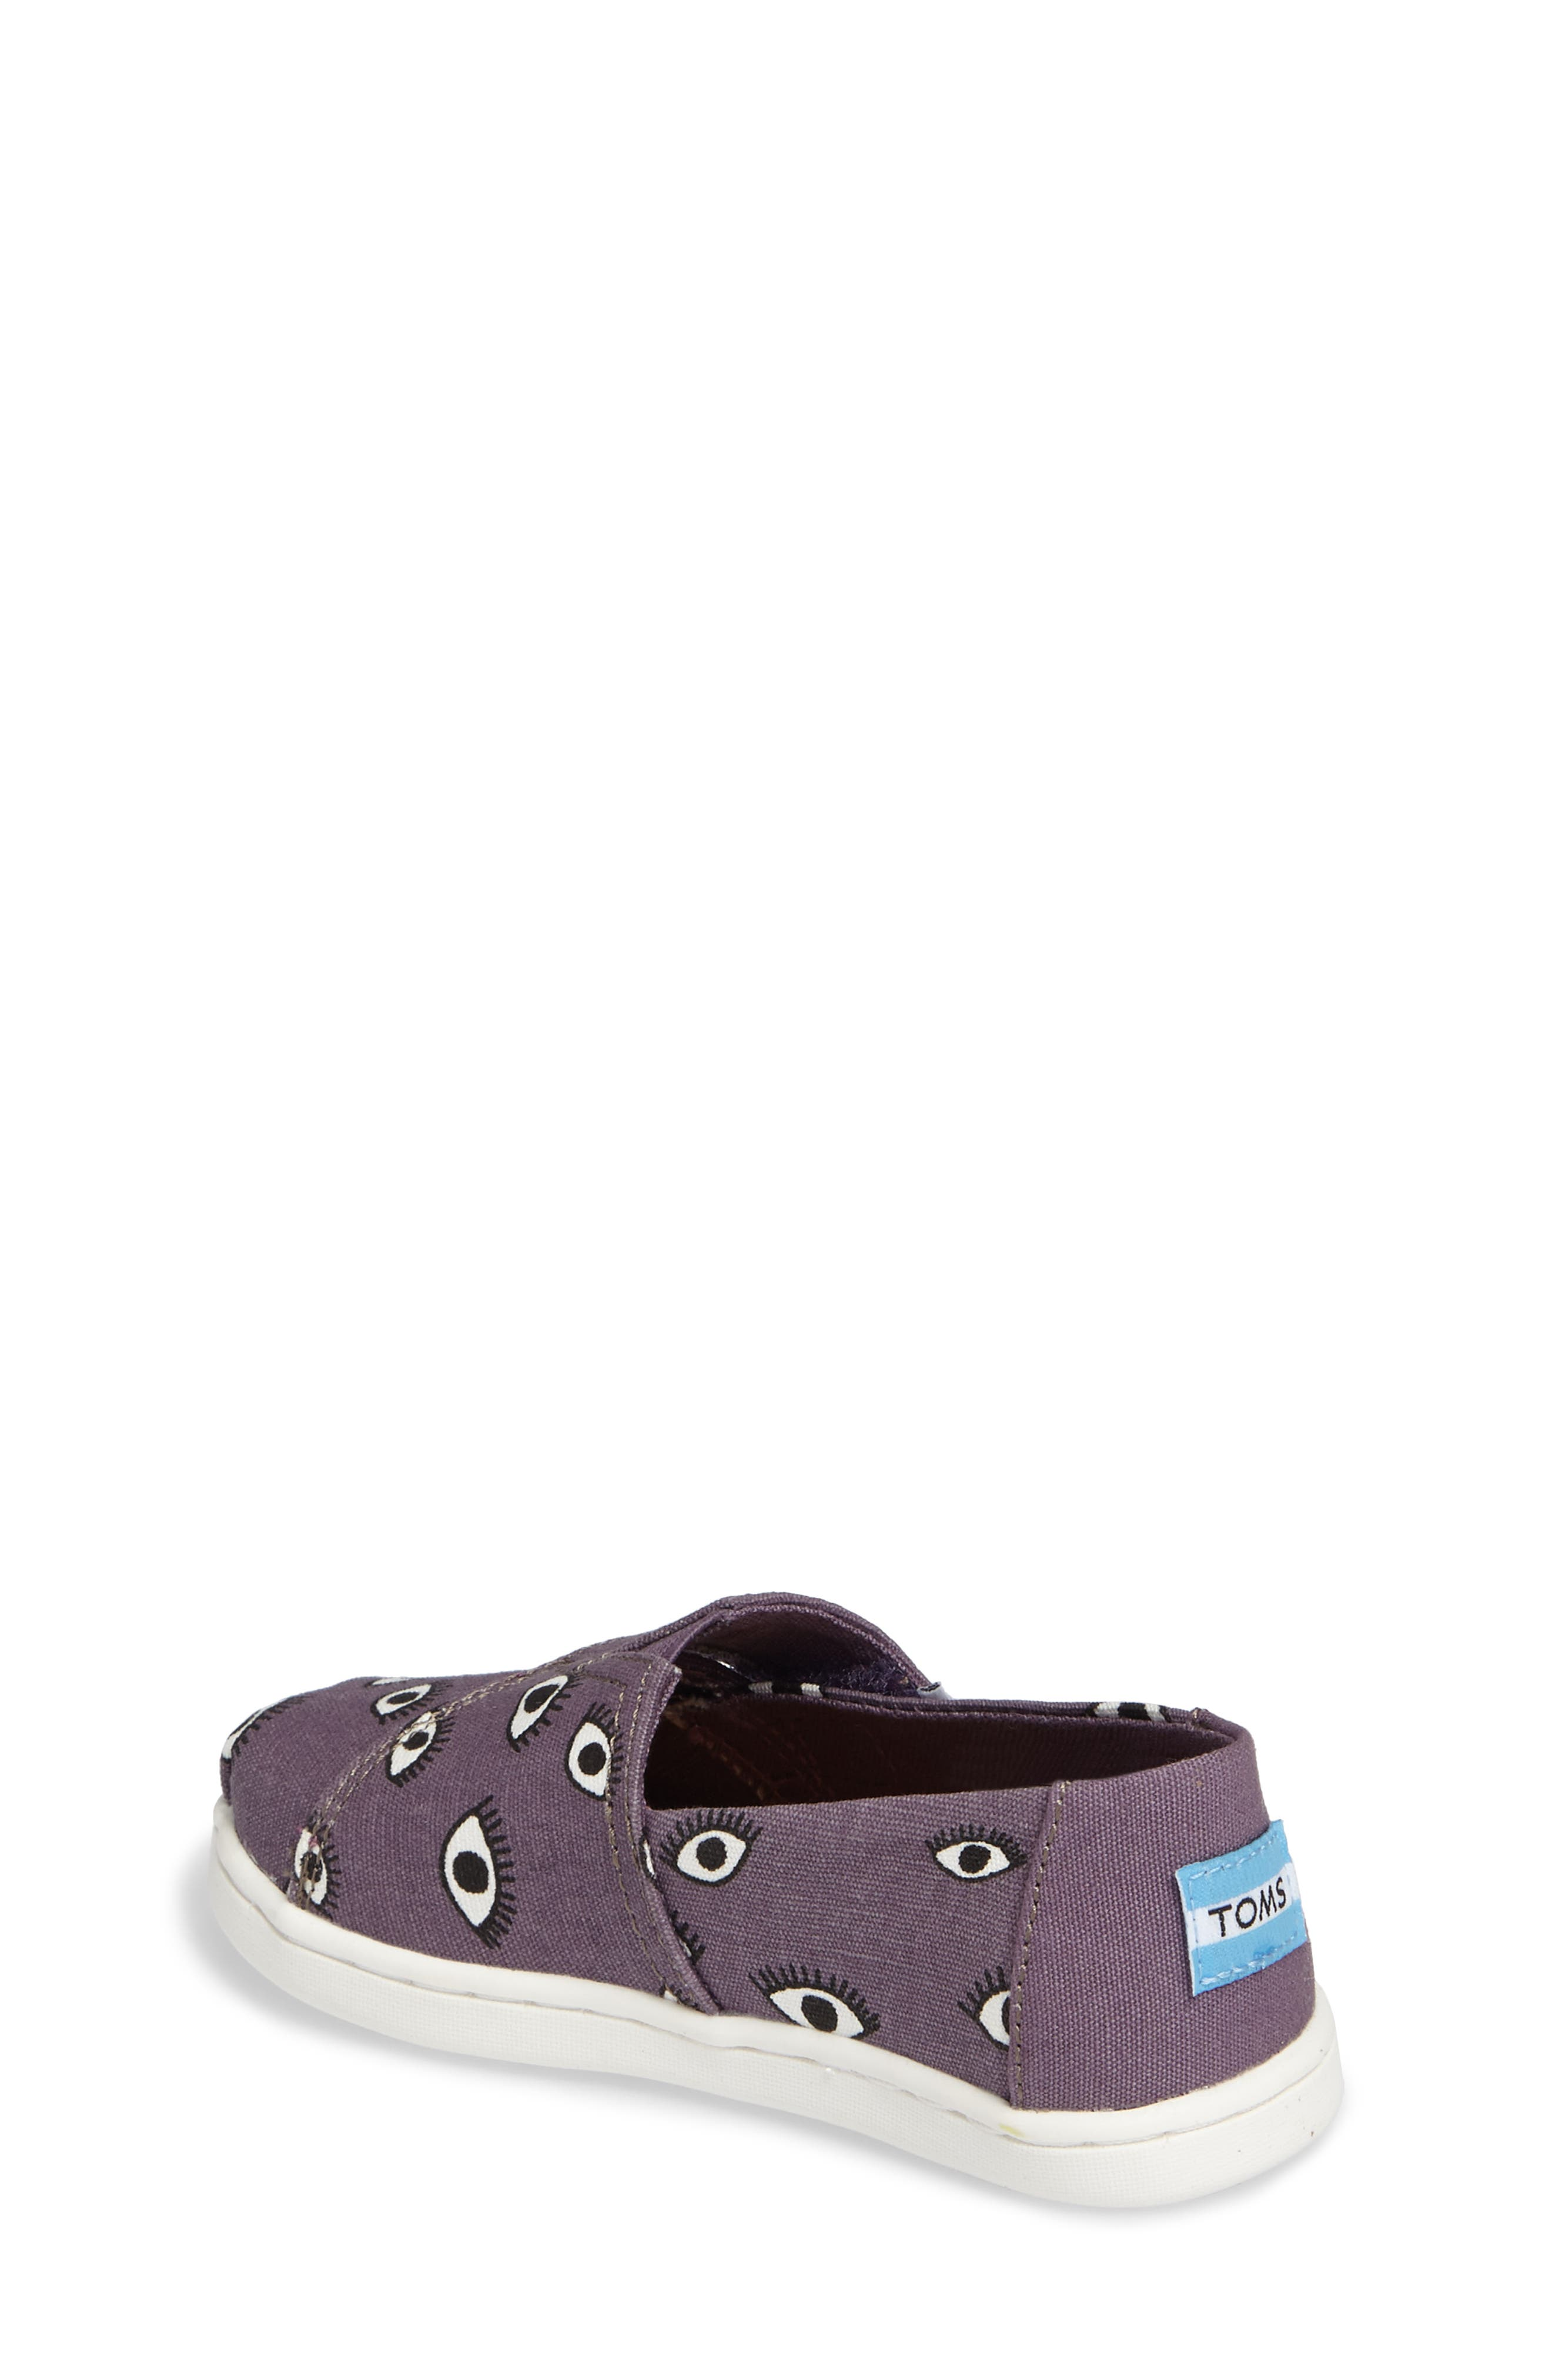 boots online for crib like oshkosh shoes toms get girls high pin darline i find cute more cribs on sneakers by shavona styles e from g future pinterest l many r top t shoe flats